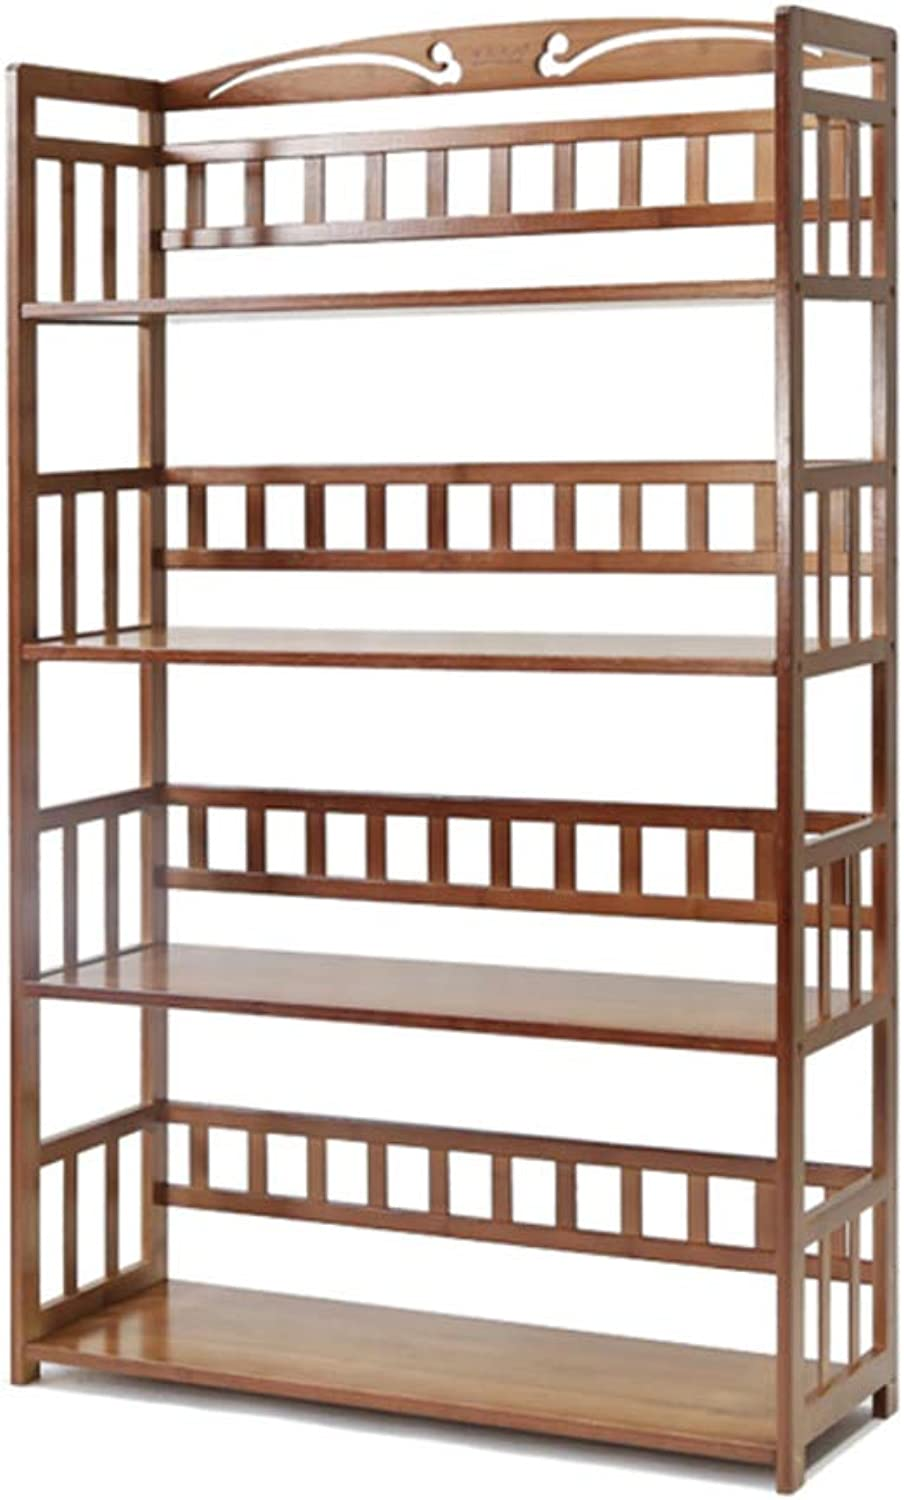 Multifunctional Bookshelf,3-5 Tier Bamboo naturalbookcase Storage Rack Thickened Open Wood Shelves for cds, Movies & Books -B 69x25x122cm(27x10x48inch)